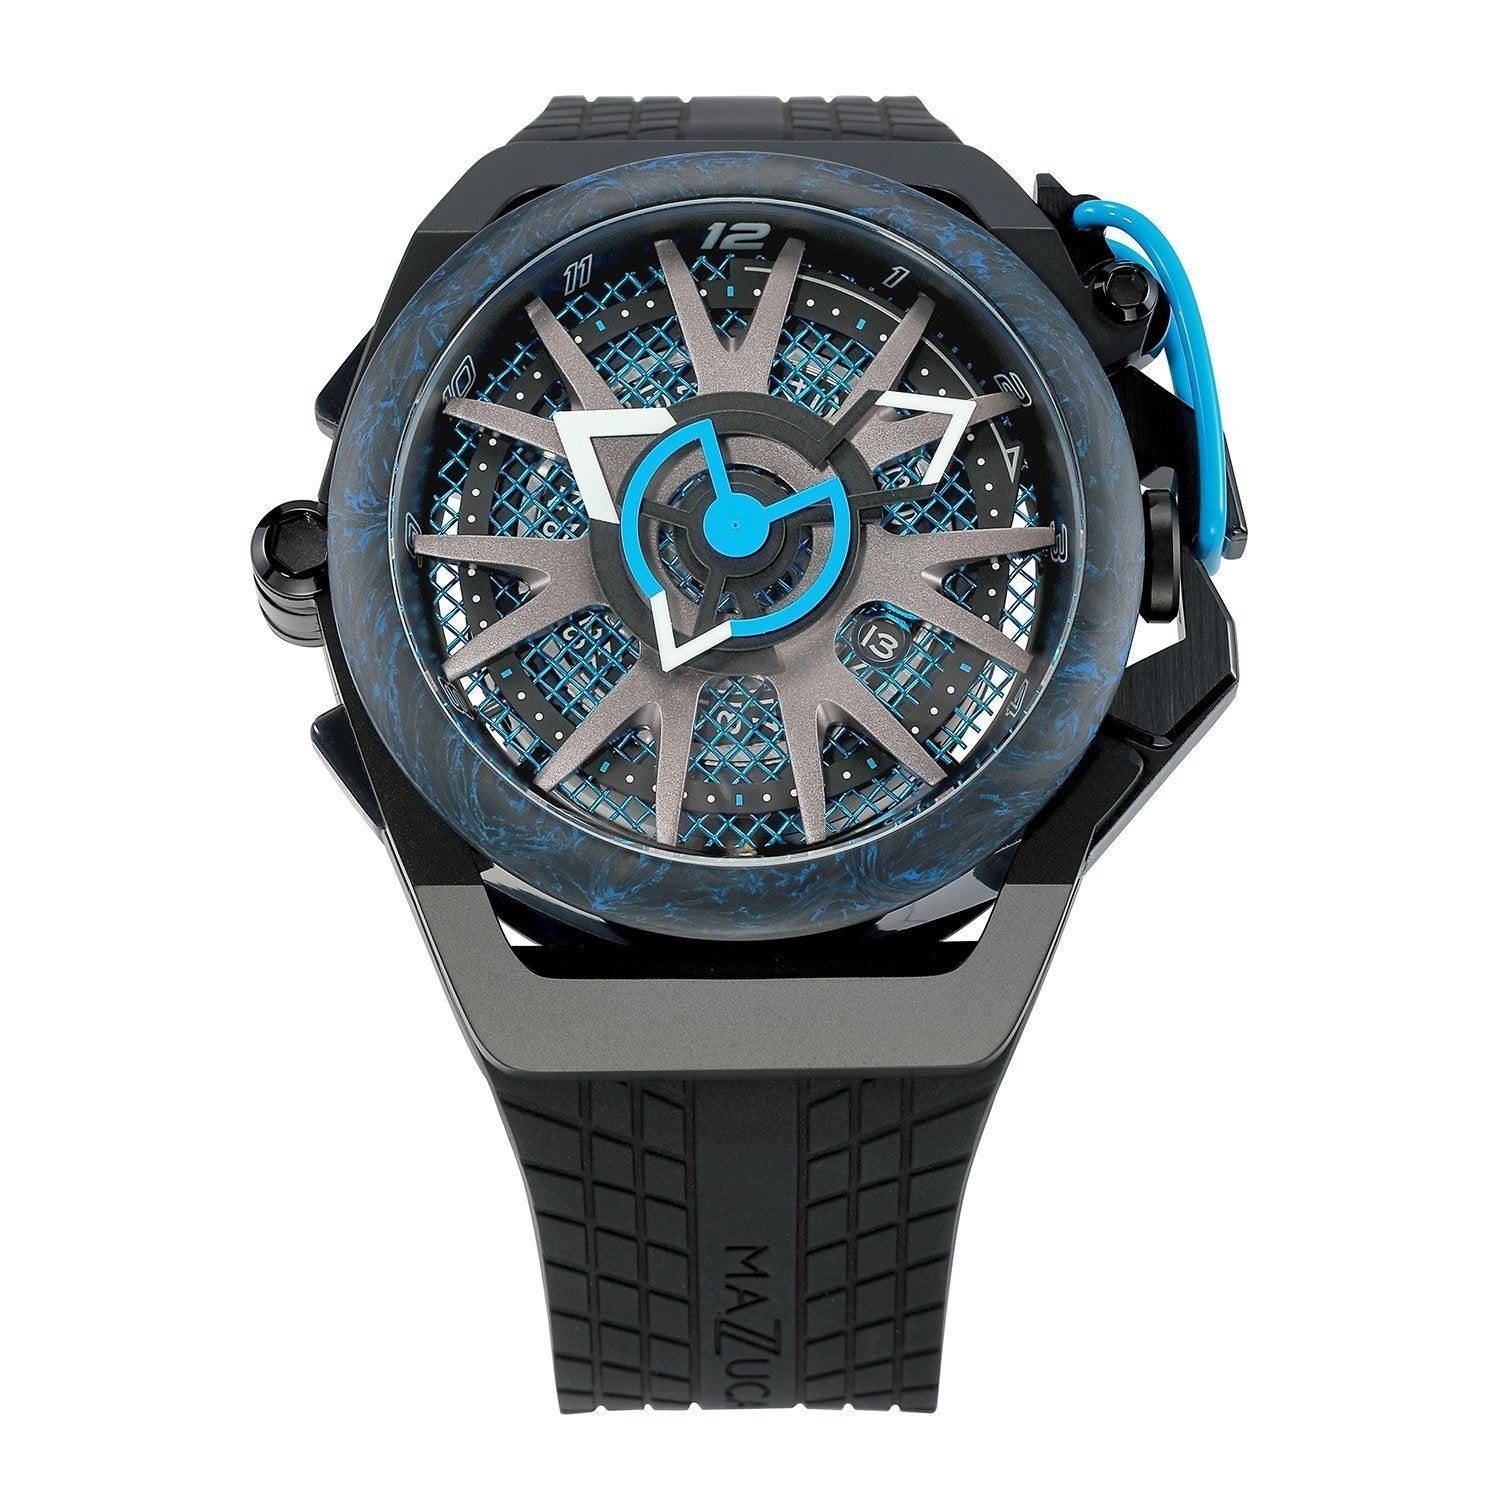 Mazzucato Reversible Monza Blue Limited Edition - Watches & Crystals